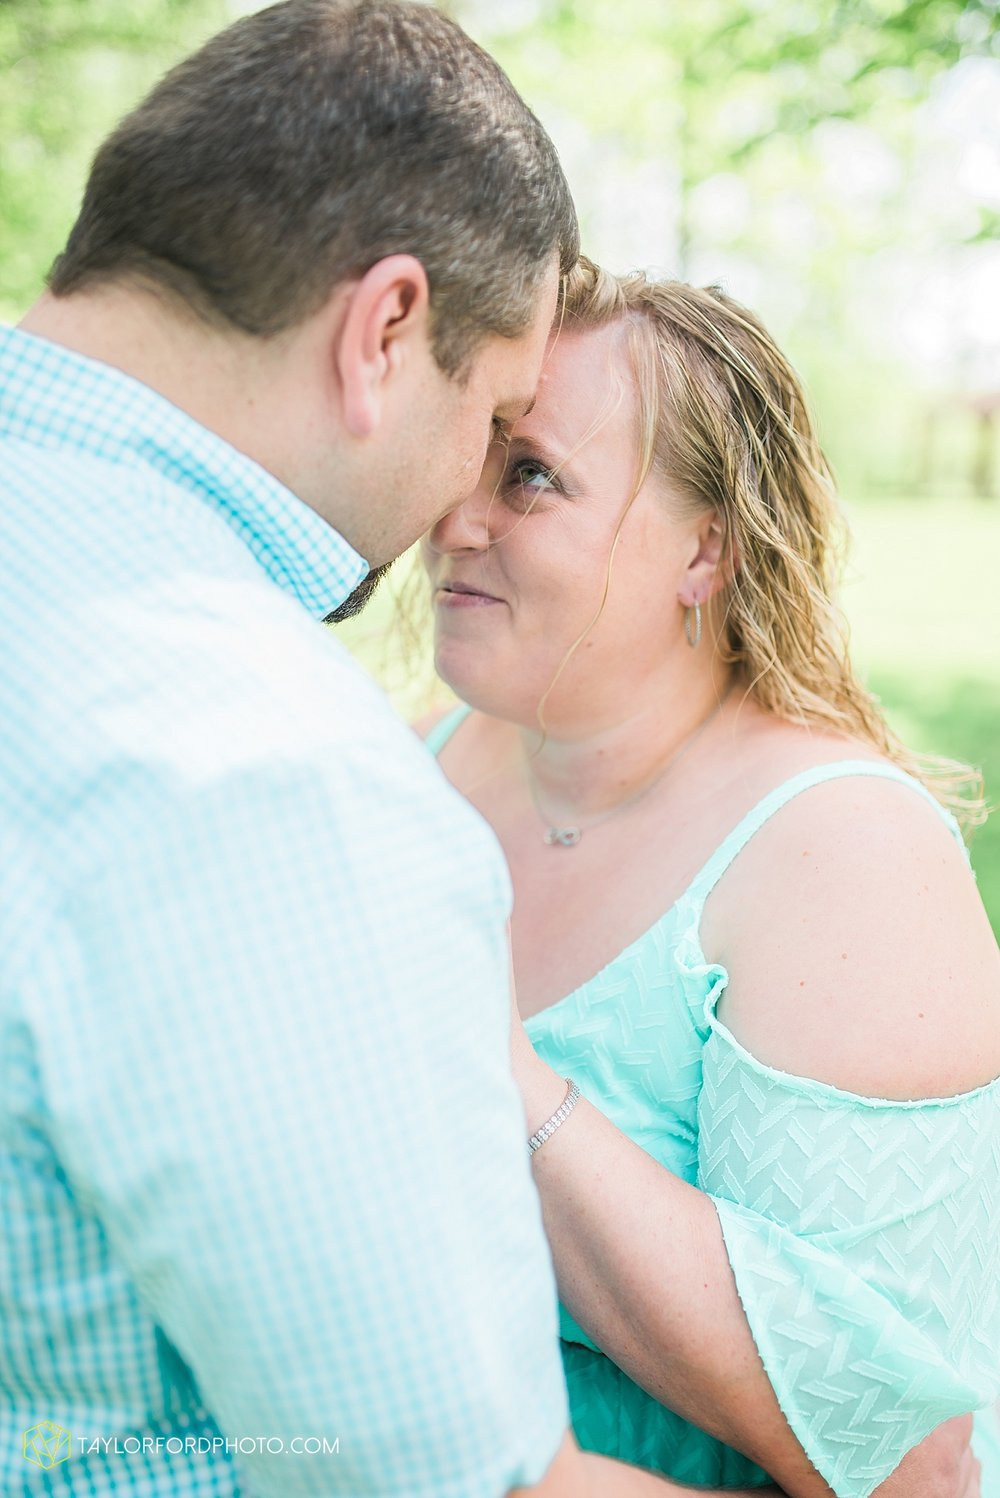 van-wert-lima-northwest-ohio-engagement-wedding-photographer-taylor-ford-photography-willow-bend-golf-course_1822.jpg